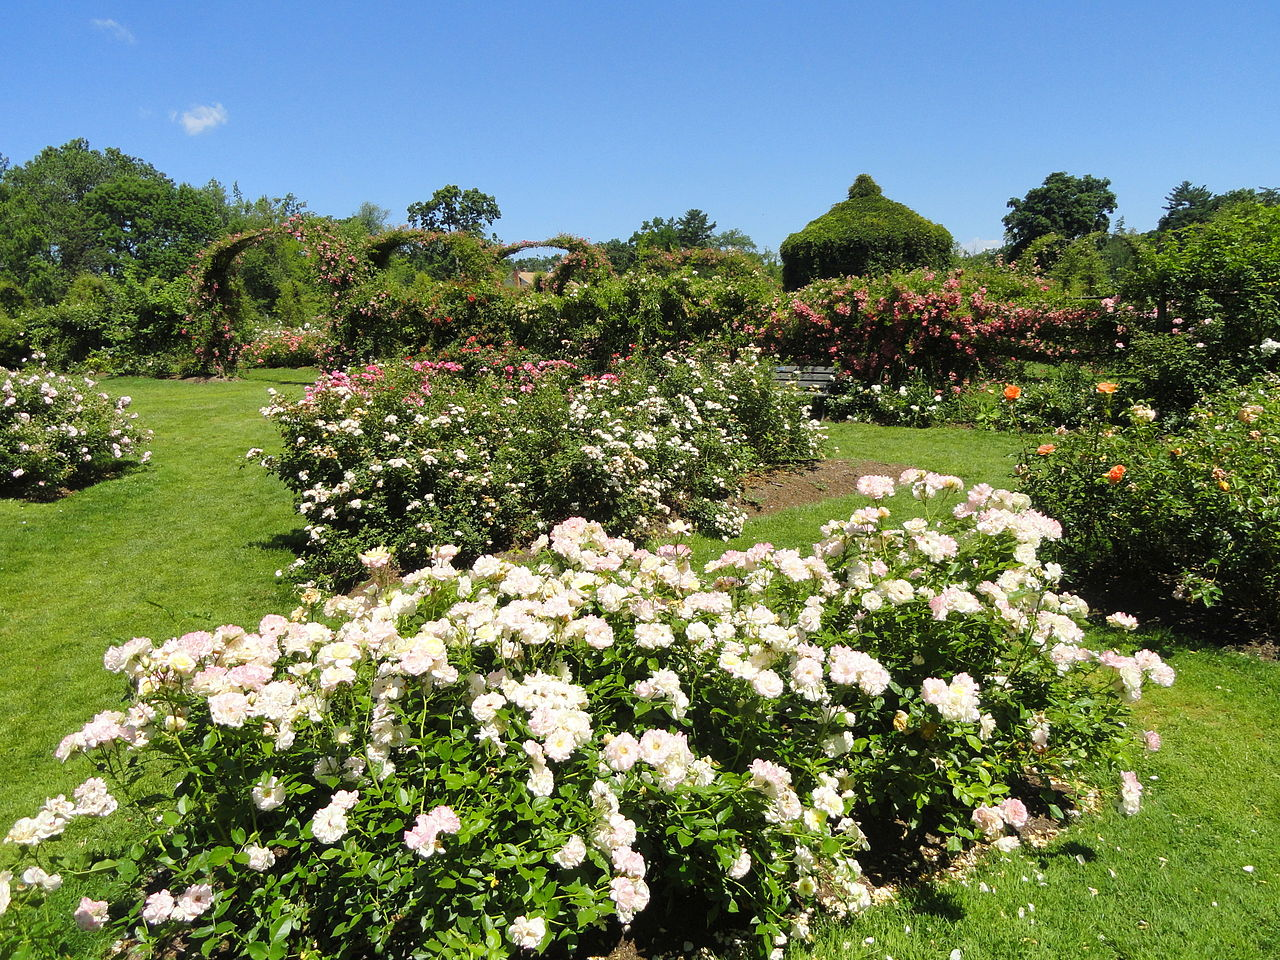 Rose garden with gazebo in background.